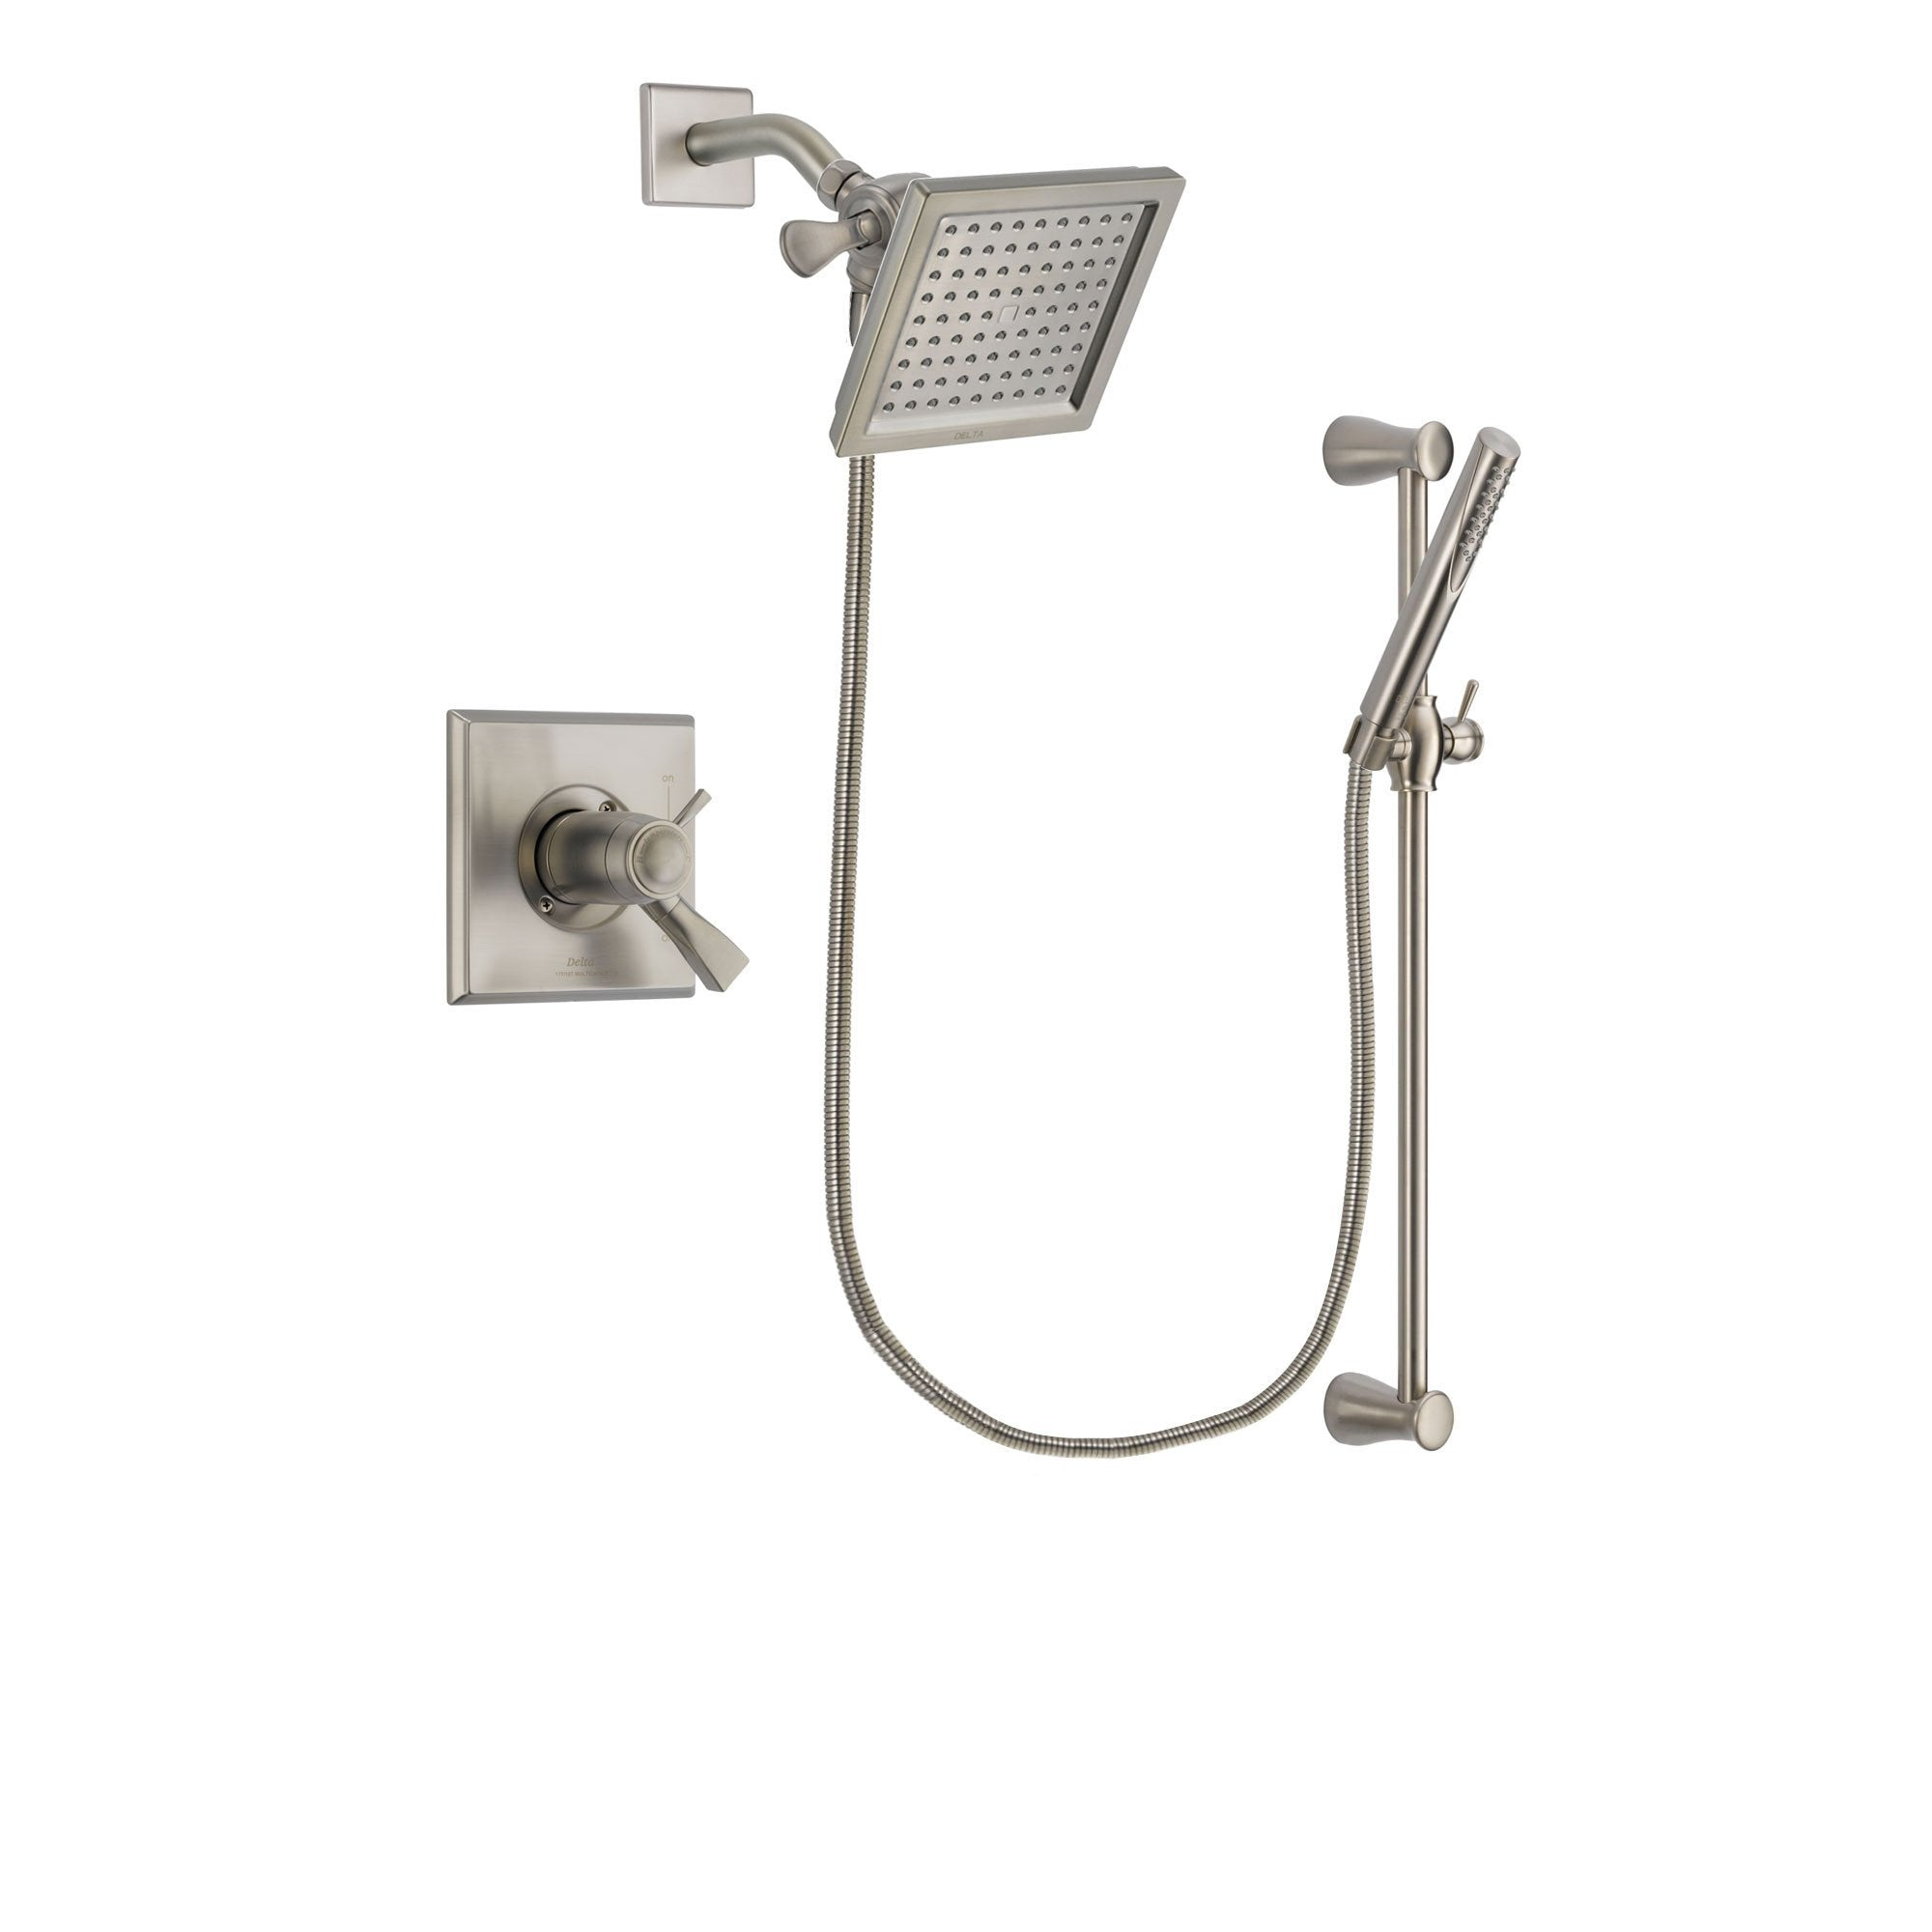 Delta Dryden Stainless Steel Finish Shower Faucet System w/ Hand Spray DSP2292V